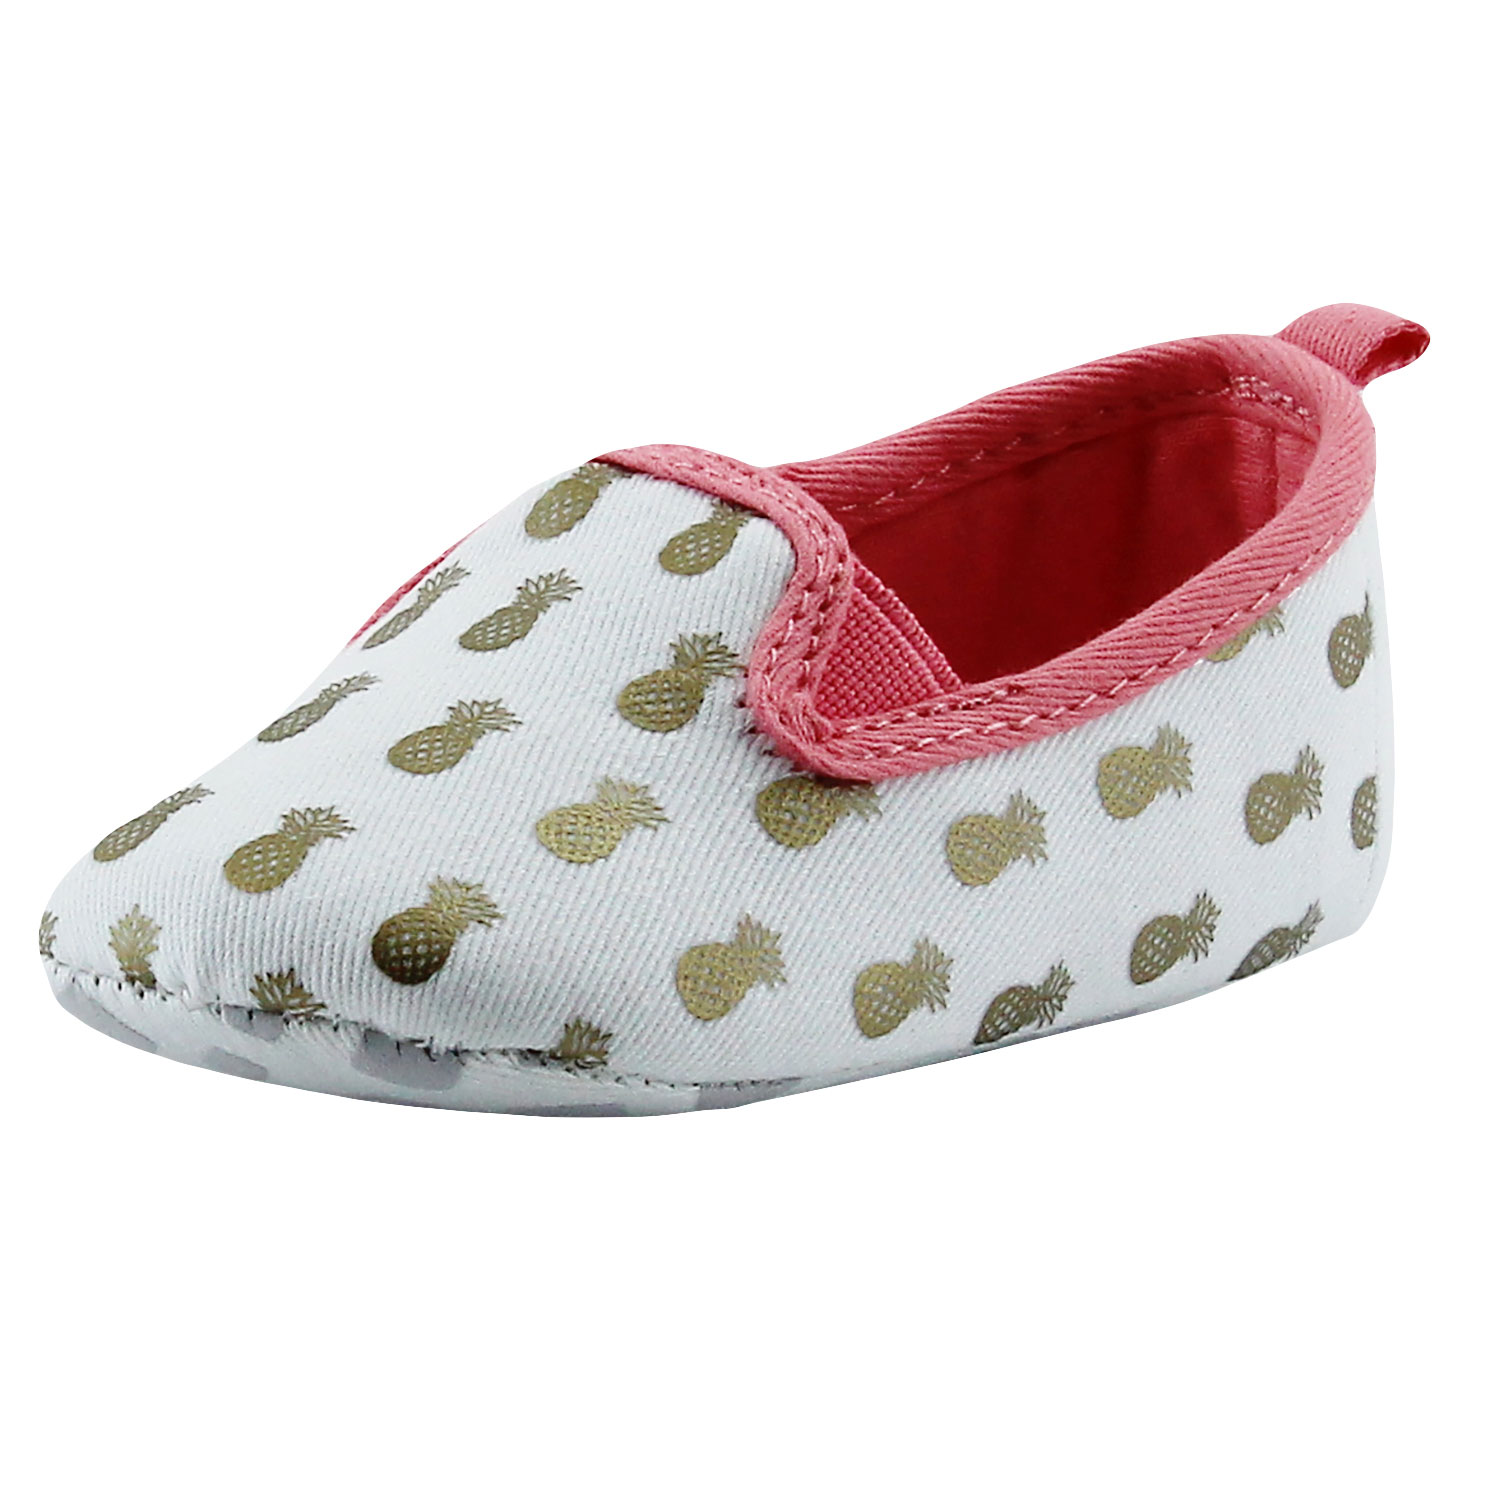 Rosie Pope Pineapple Mania Slip on Sneakers 0 3 Months Infant Crib